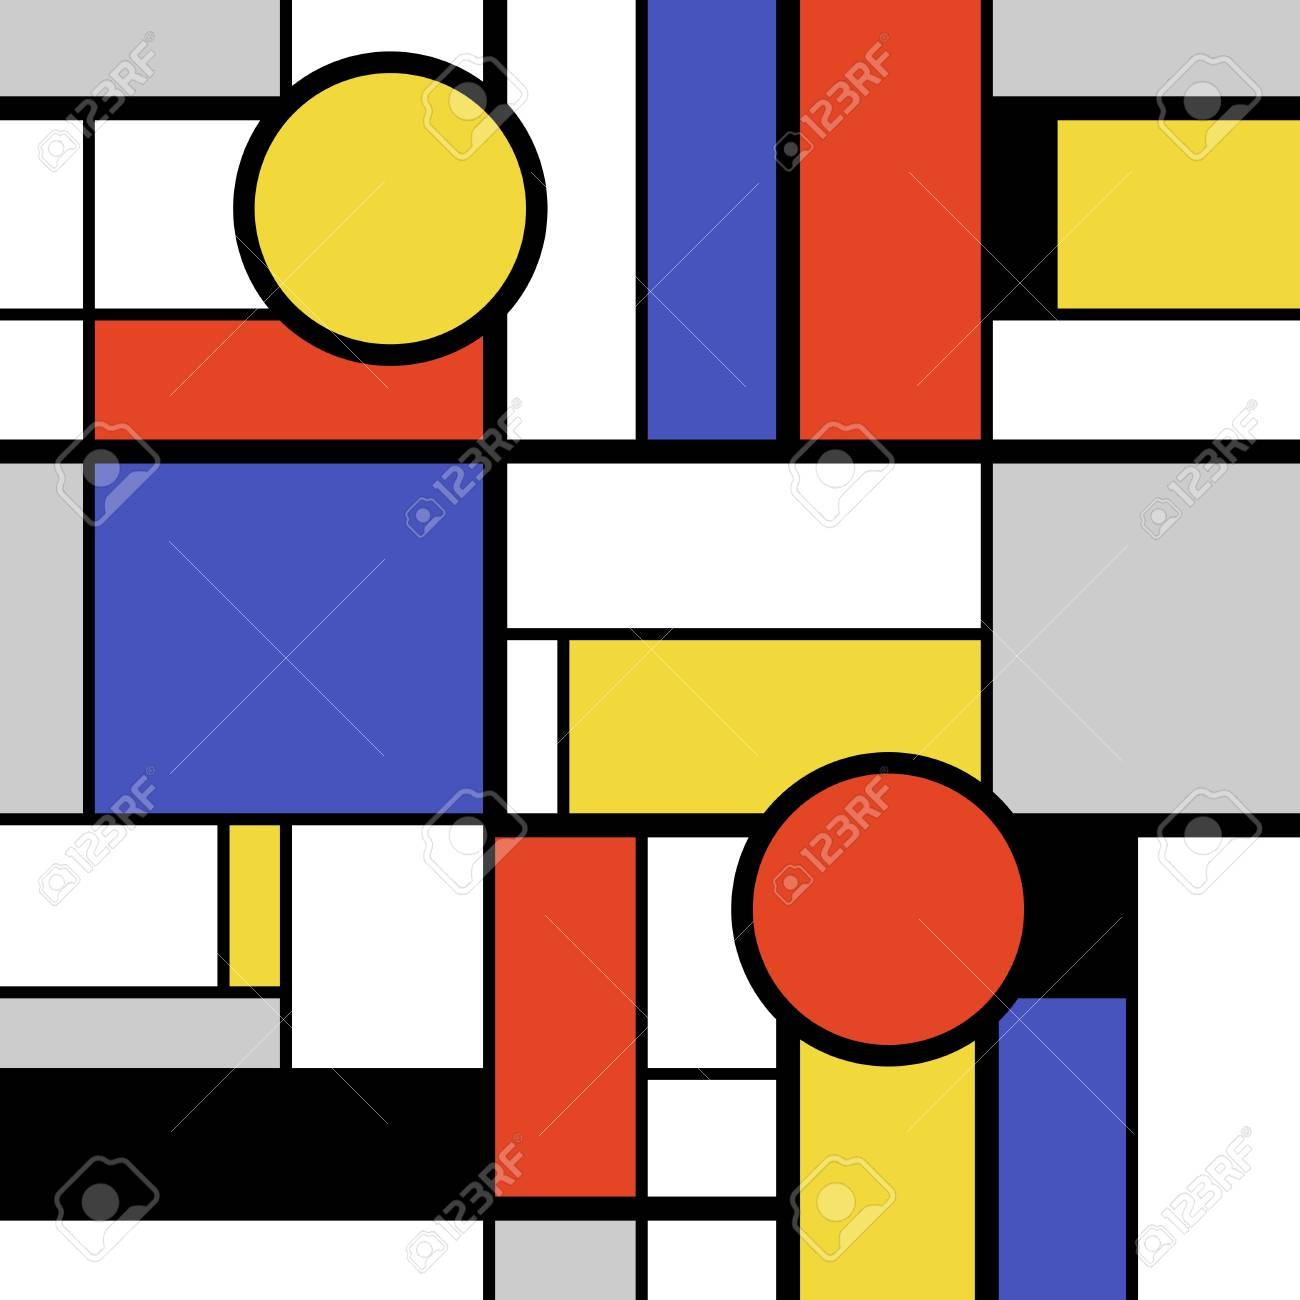 Bold Modern Art Abstract Colorful Circles Squares And Rectangles